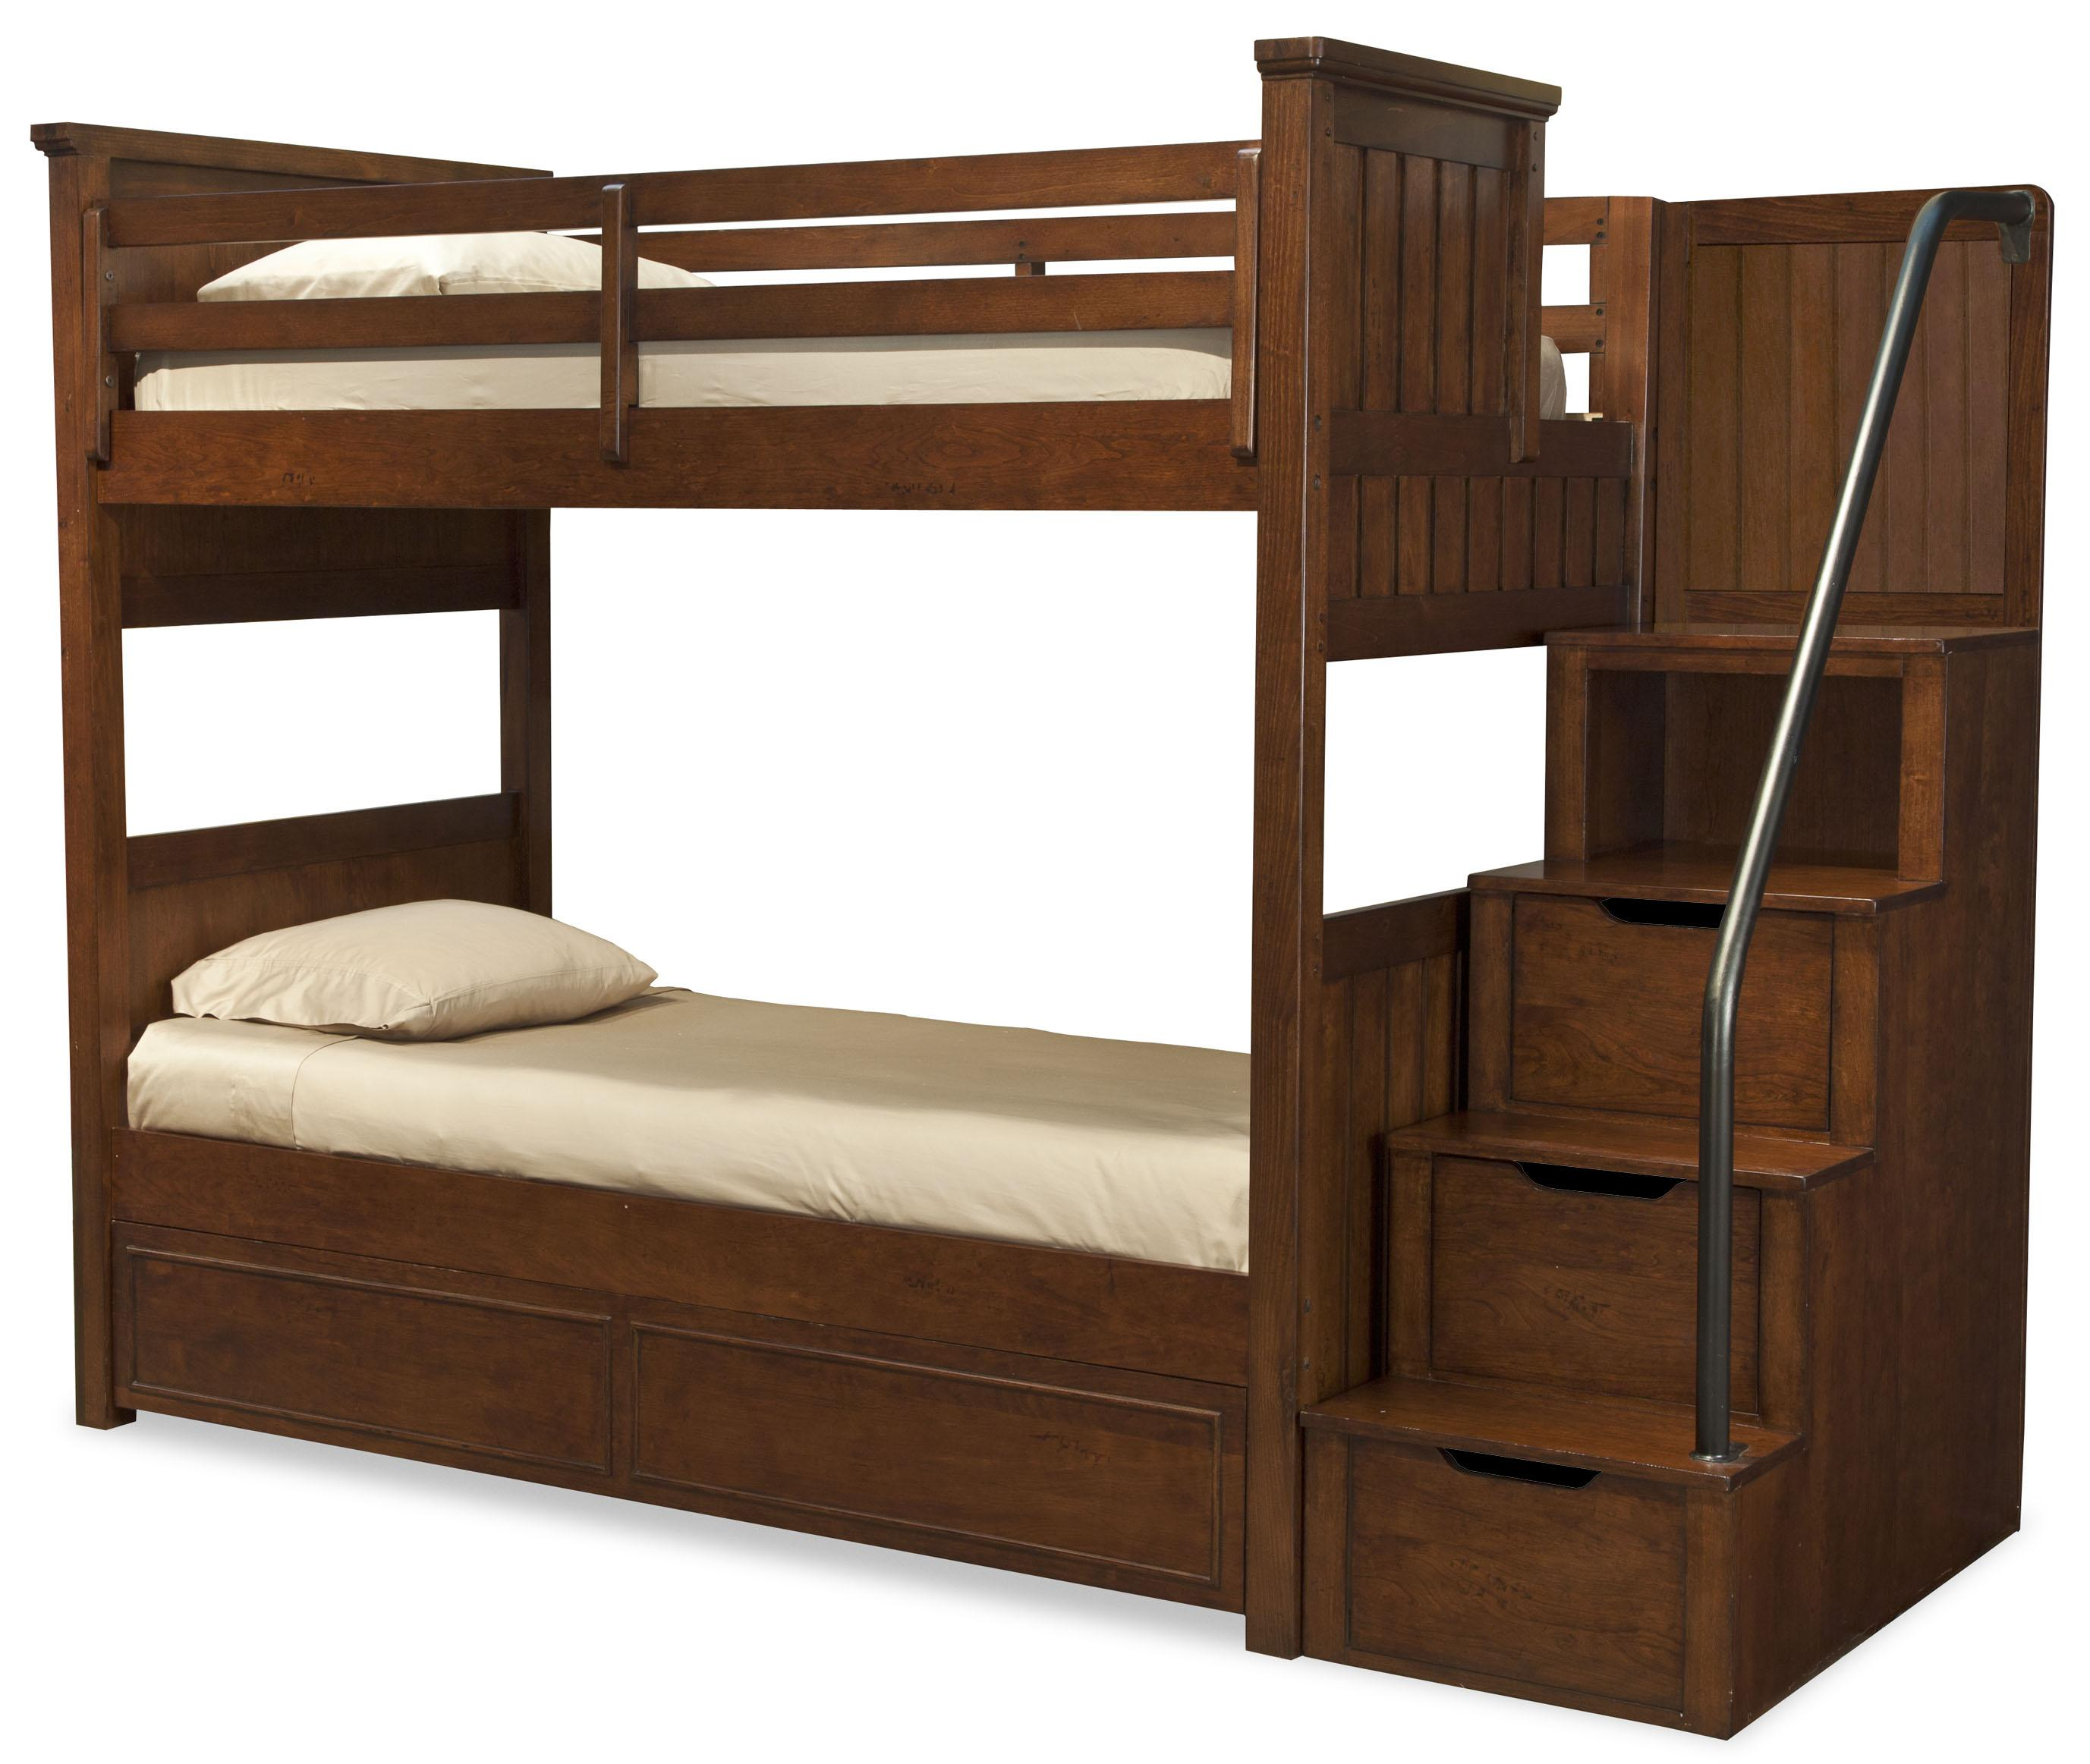 Legacy Classic Kids Dawson's Ridge Full-over-Full Bunk w/ Storage Stair - Item Number: Full-over-FullBunk+8000